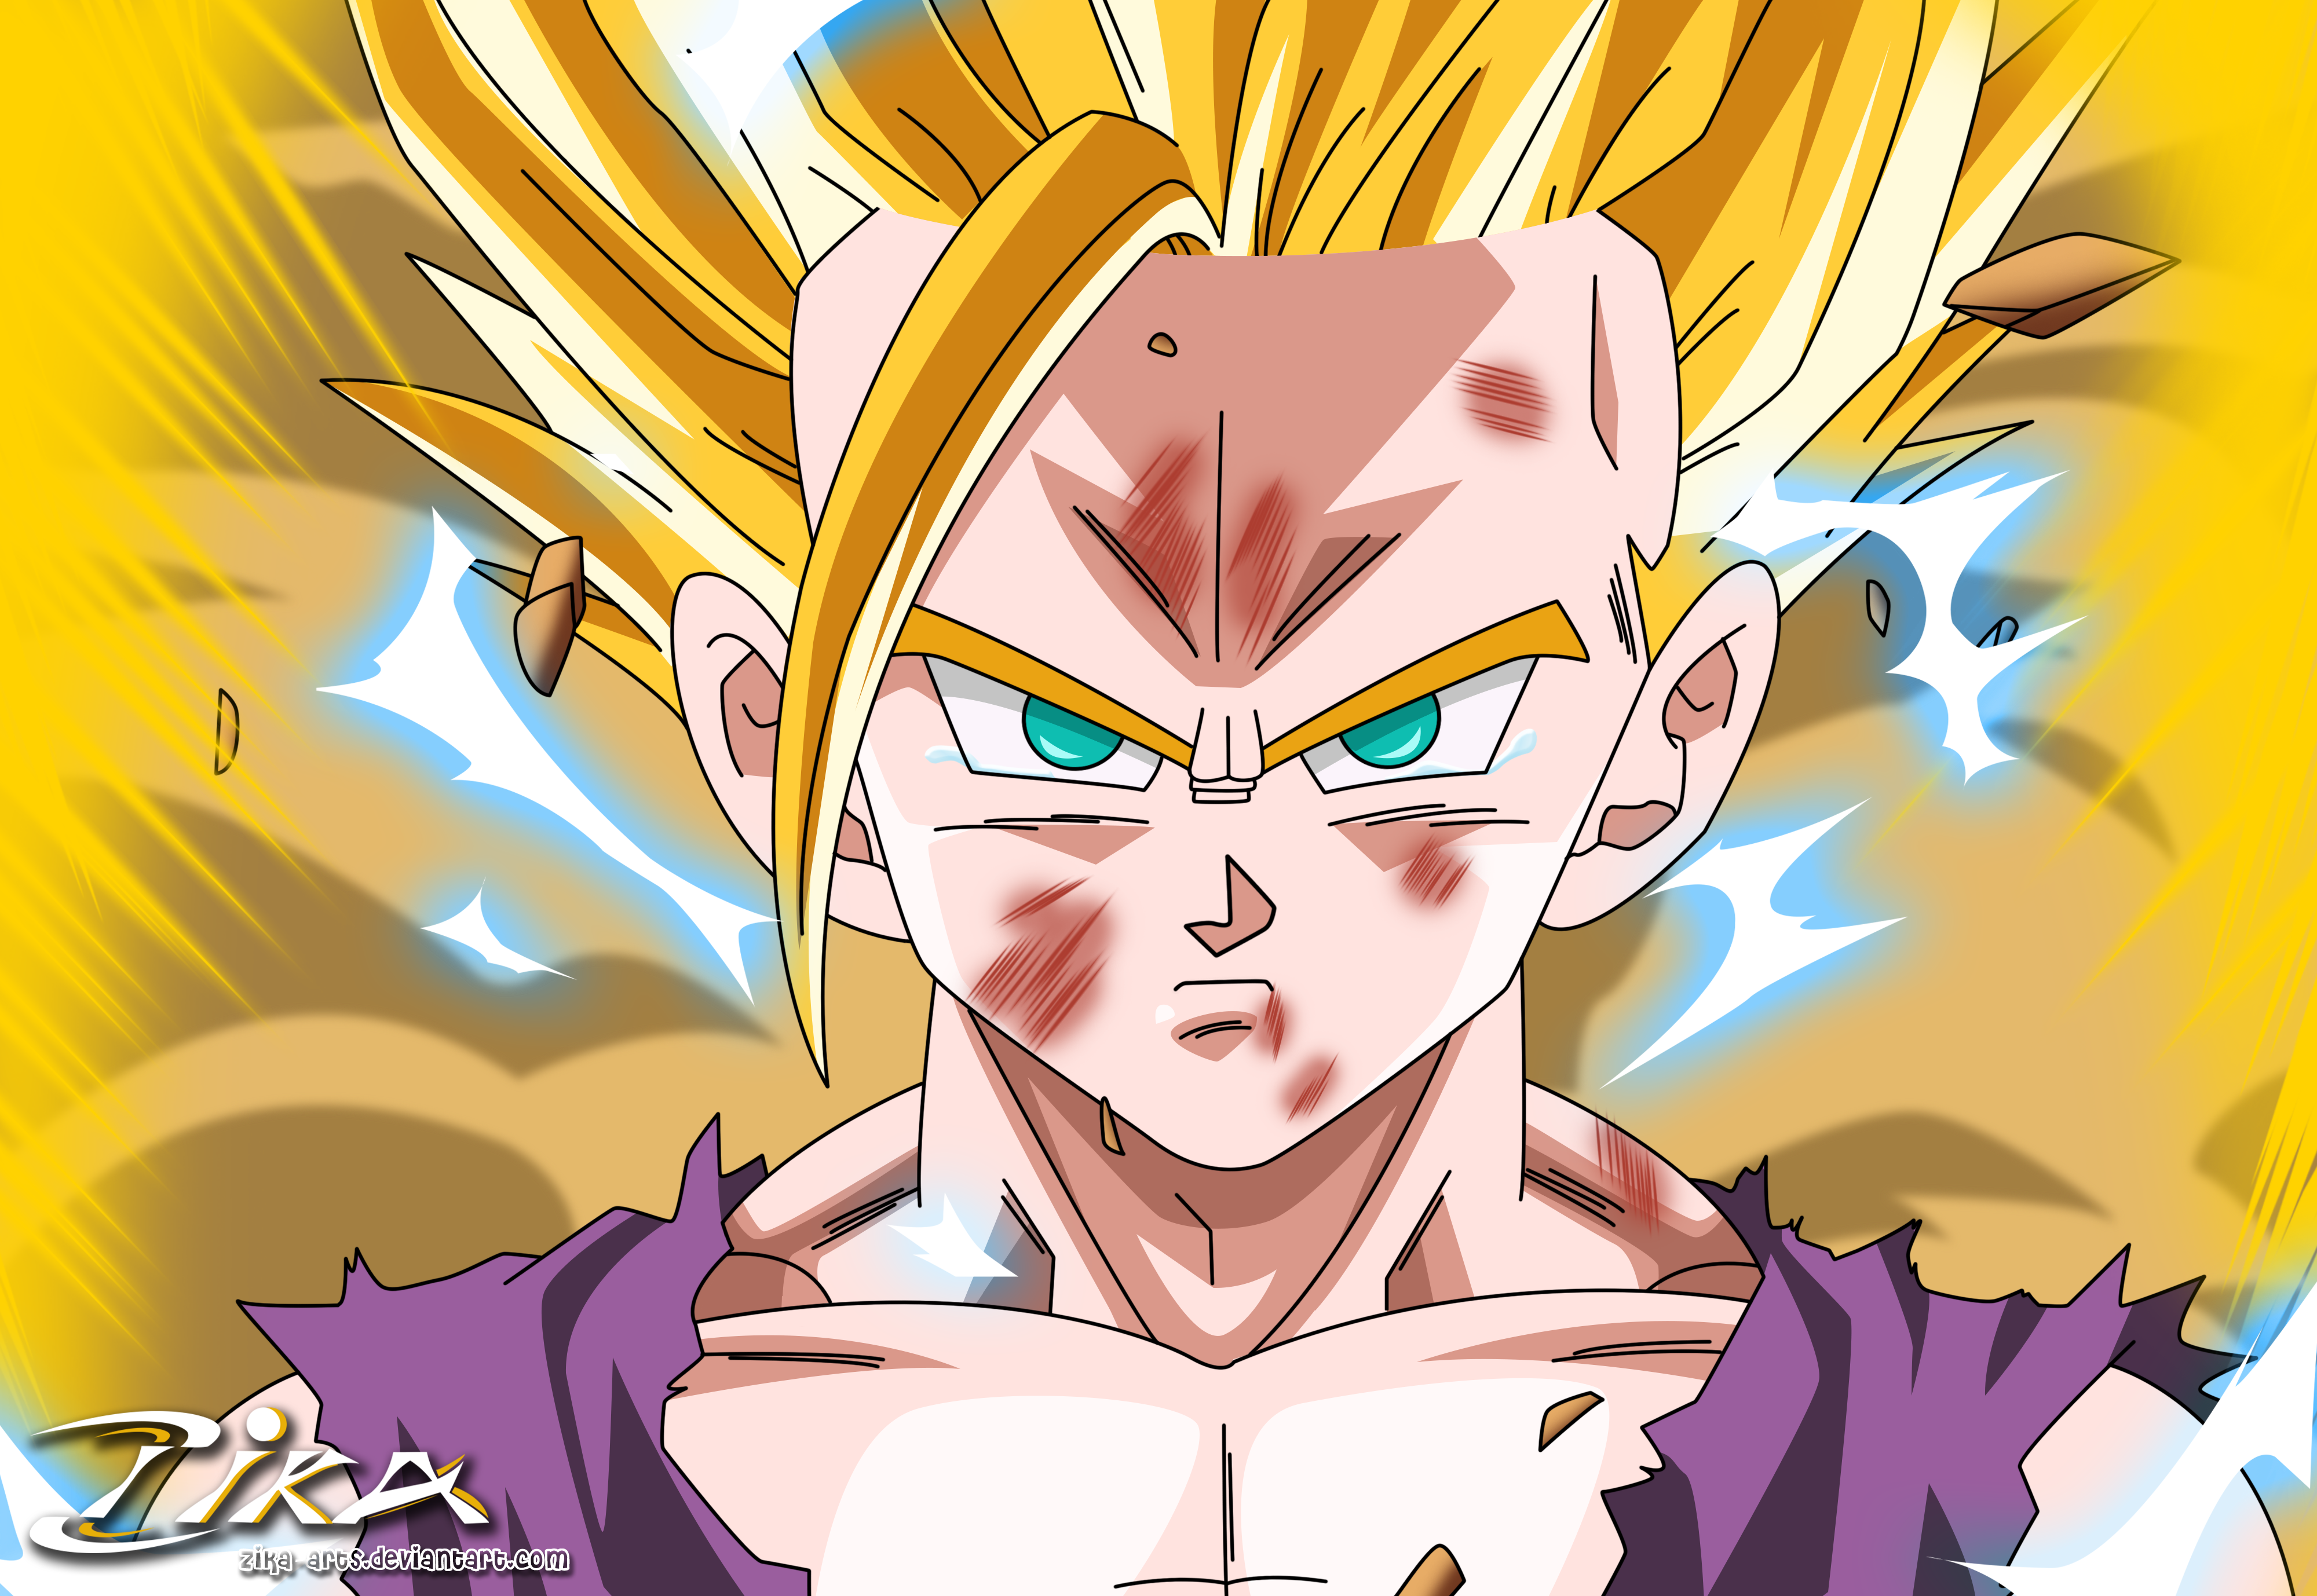 Gohan Turns Ssj2 For The First Time By Zika-arts On DeviantArt